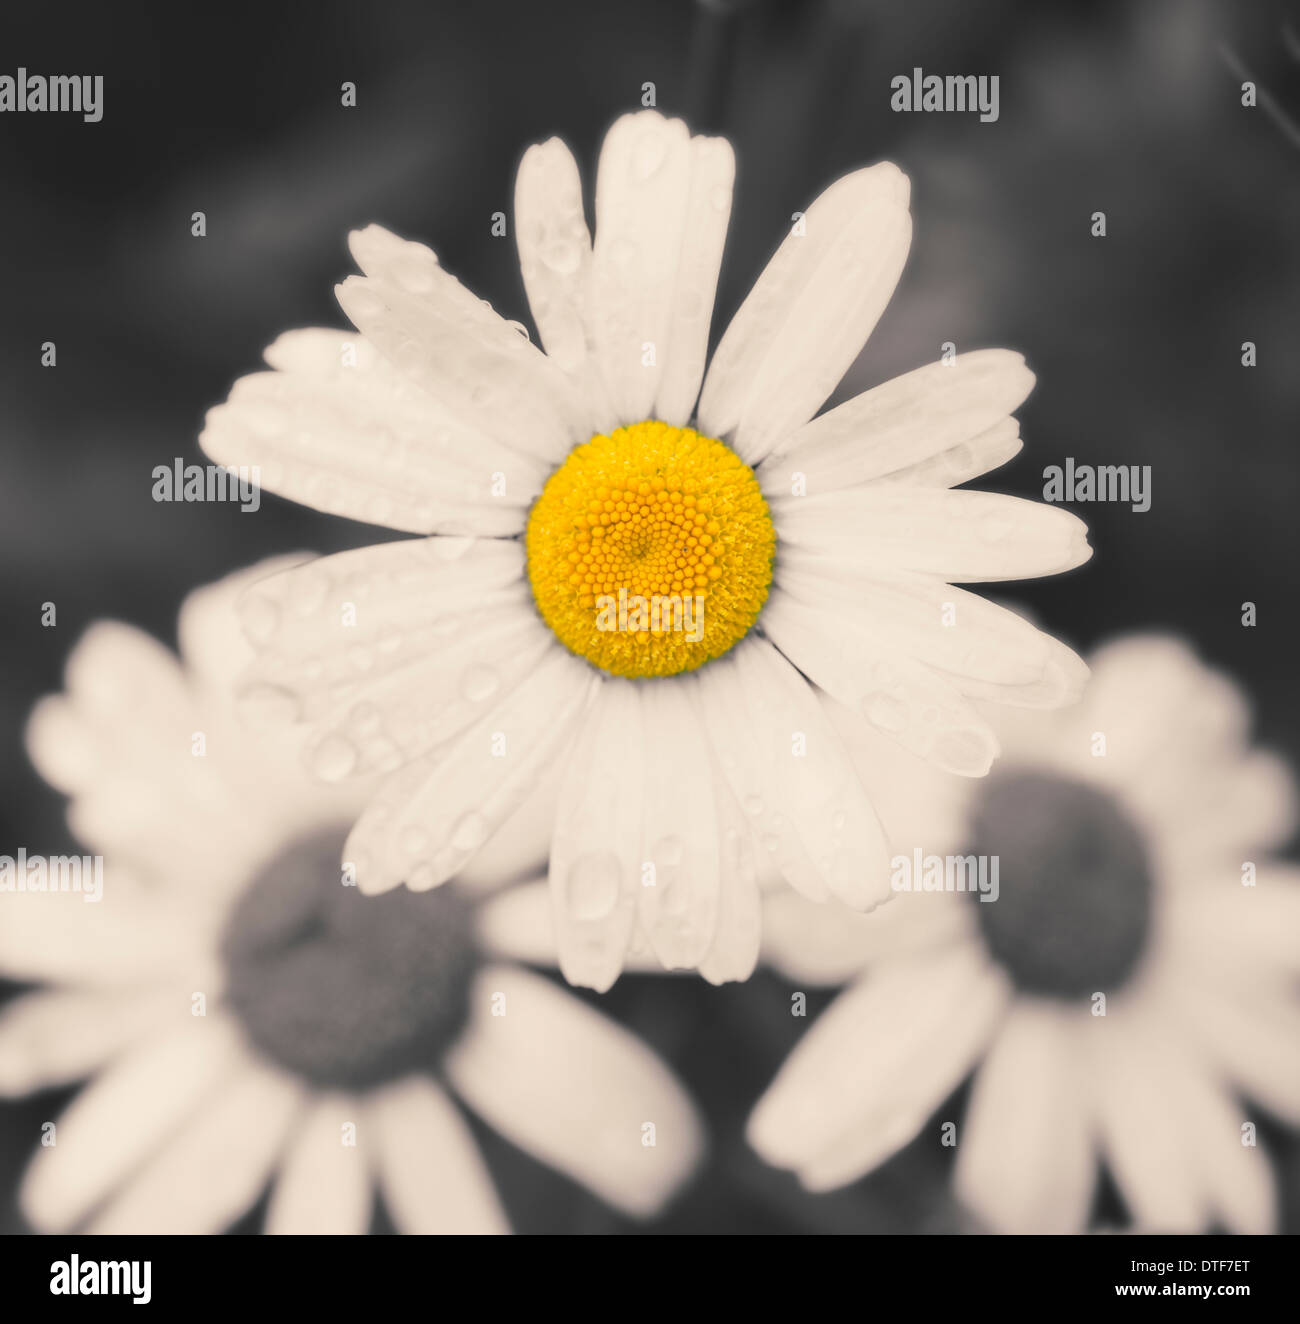 Macro Shot Of Yellow And White Daisy Flowers In Black And White With